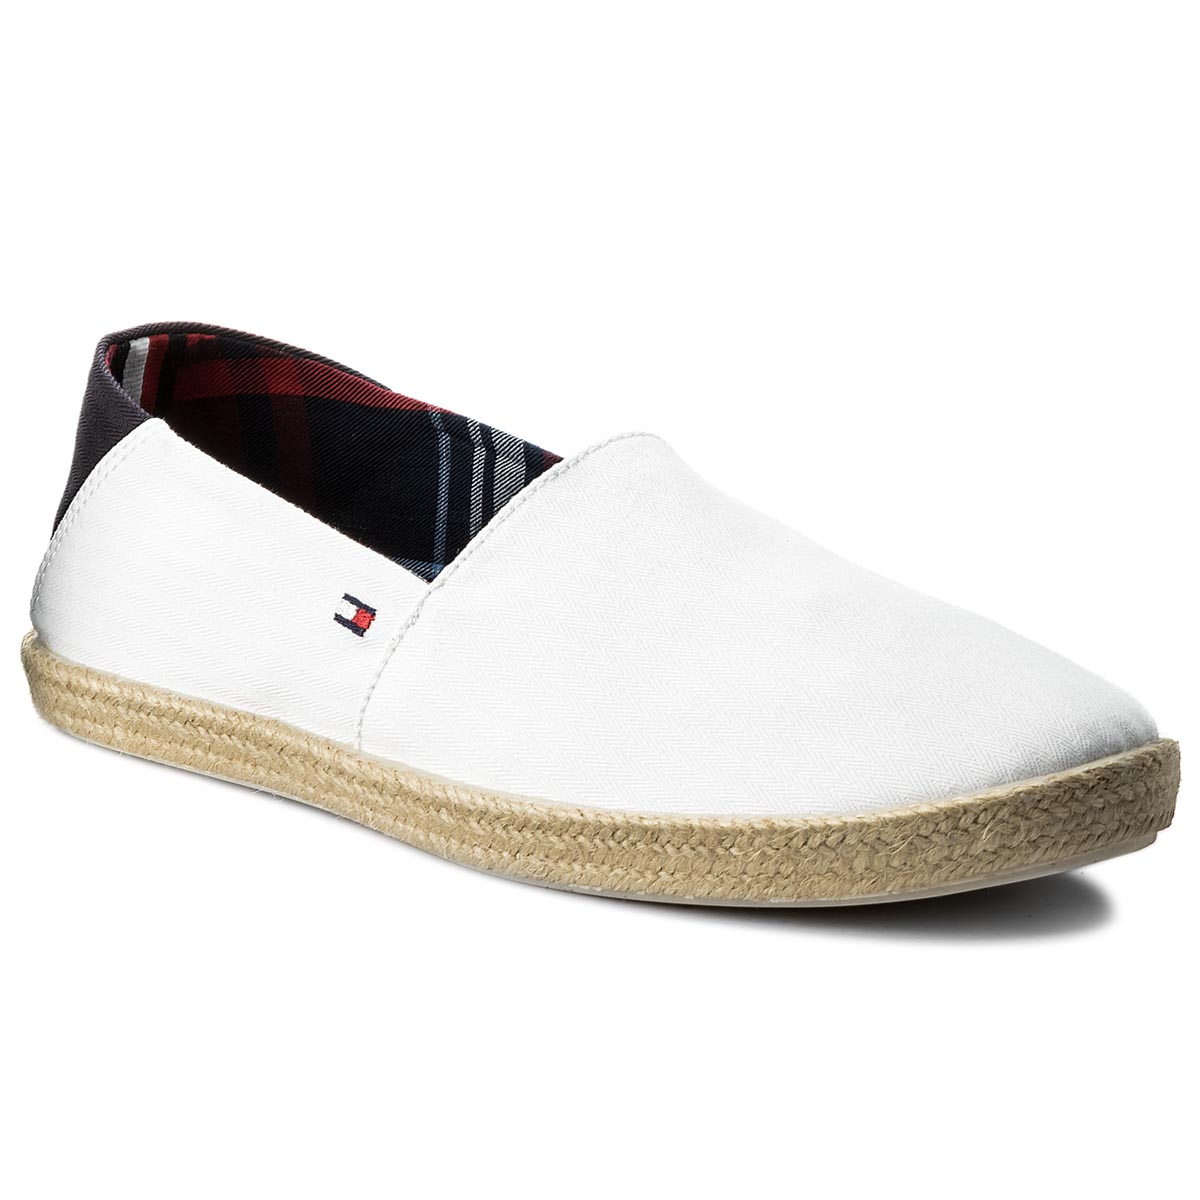 Espadrile TOMMY HILFIGER - Easy Summer Slip On FM0FM00569 White 100